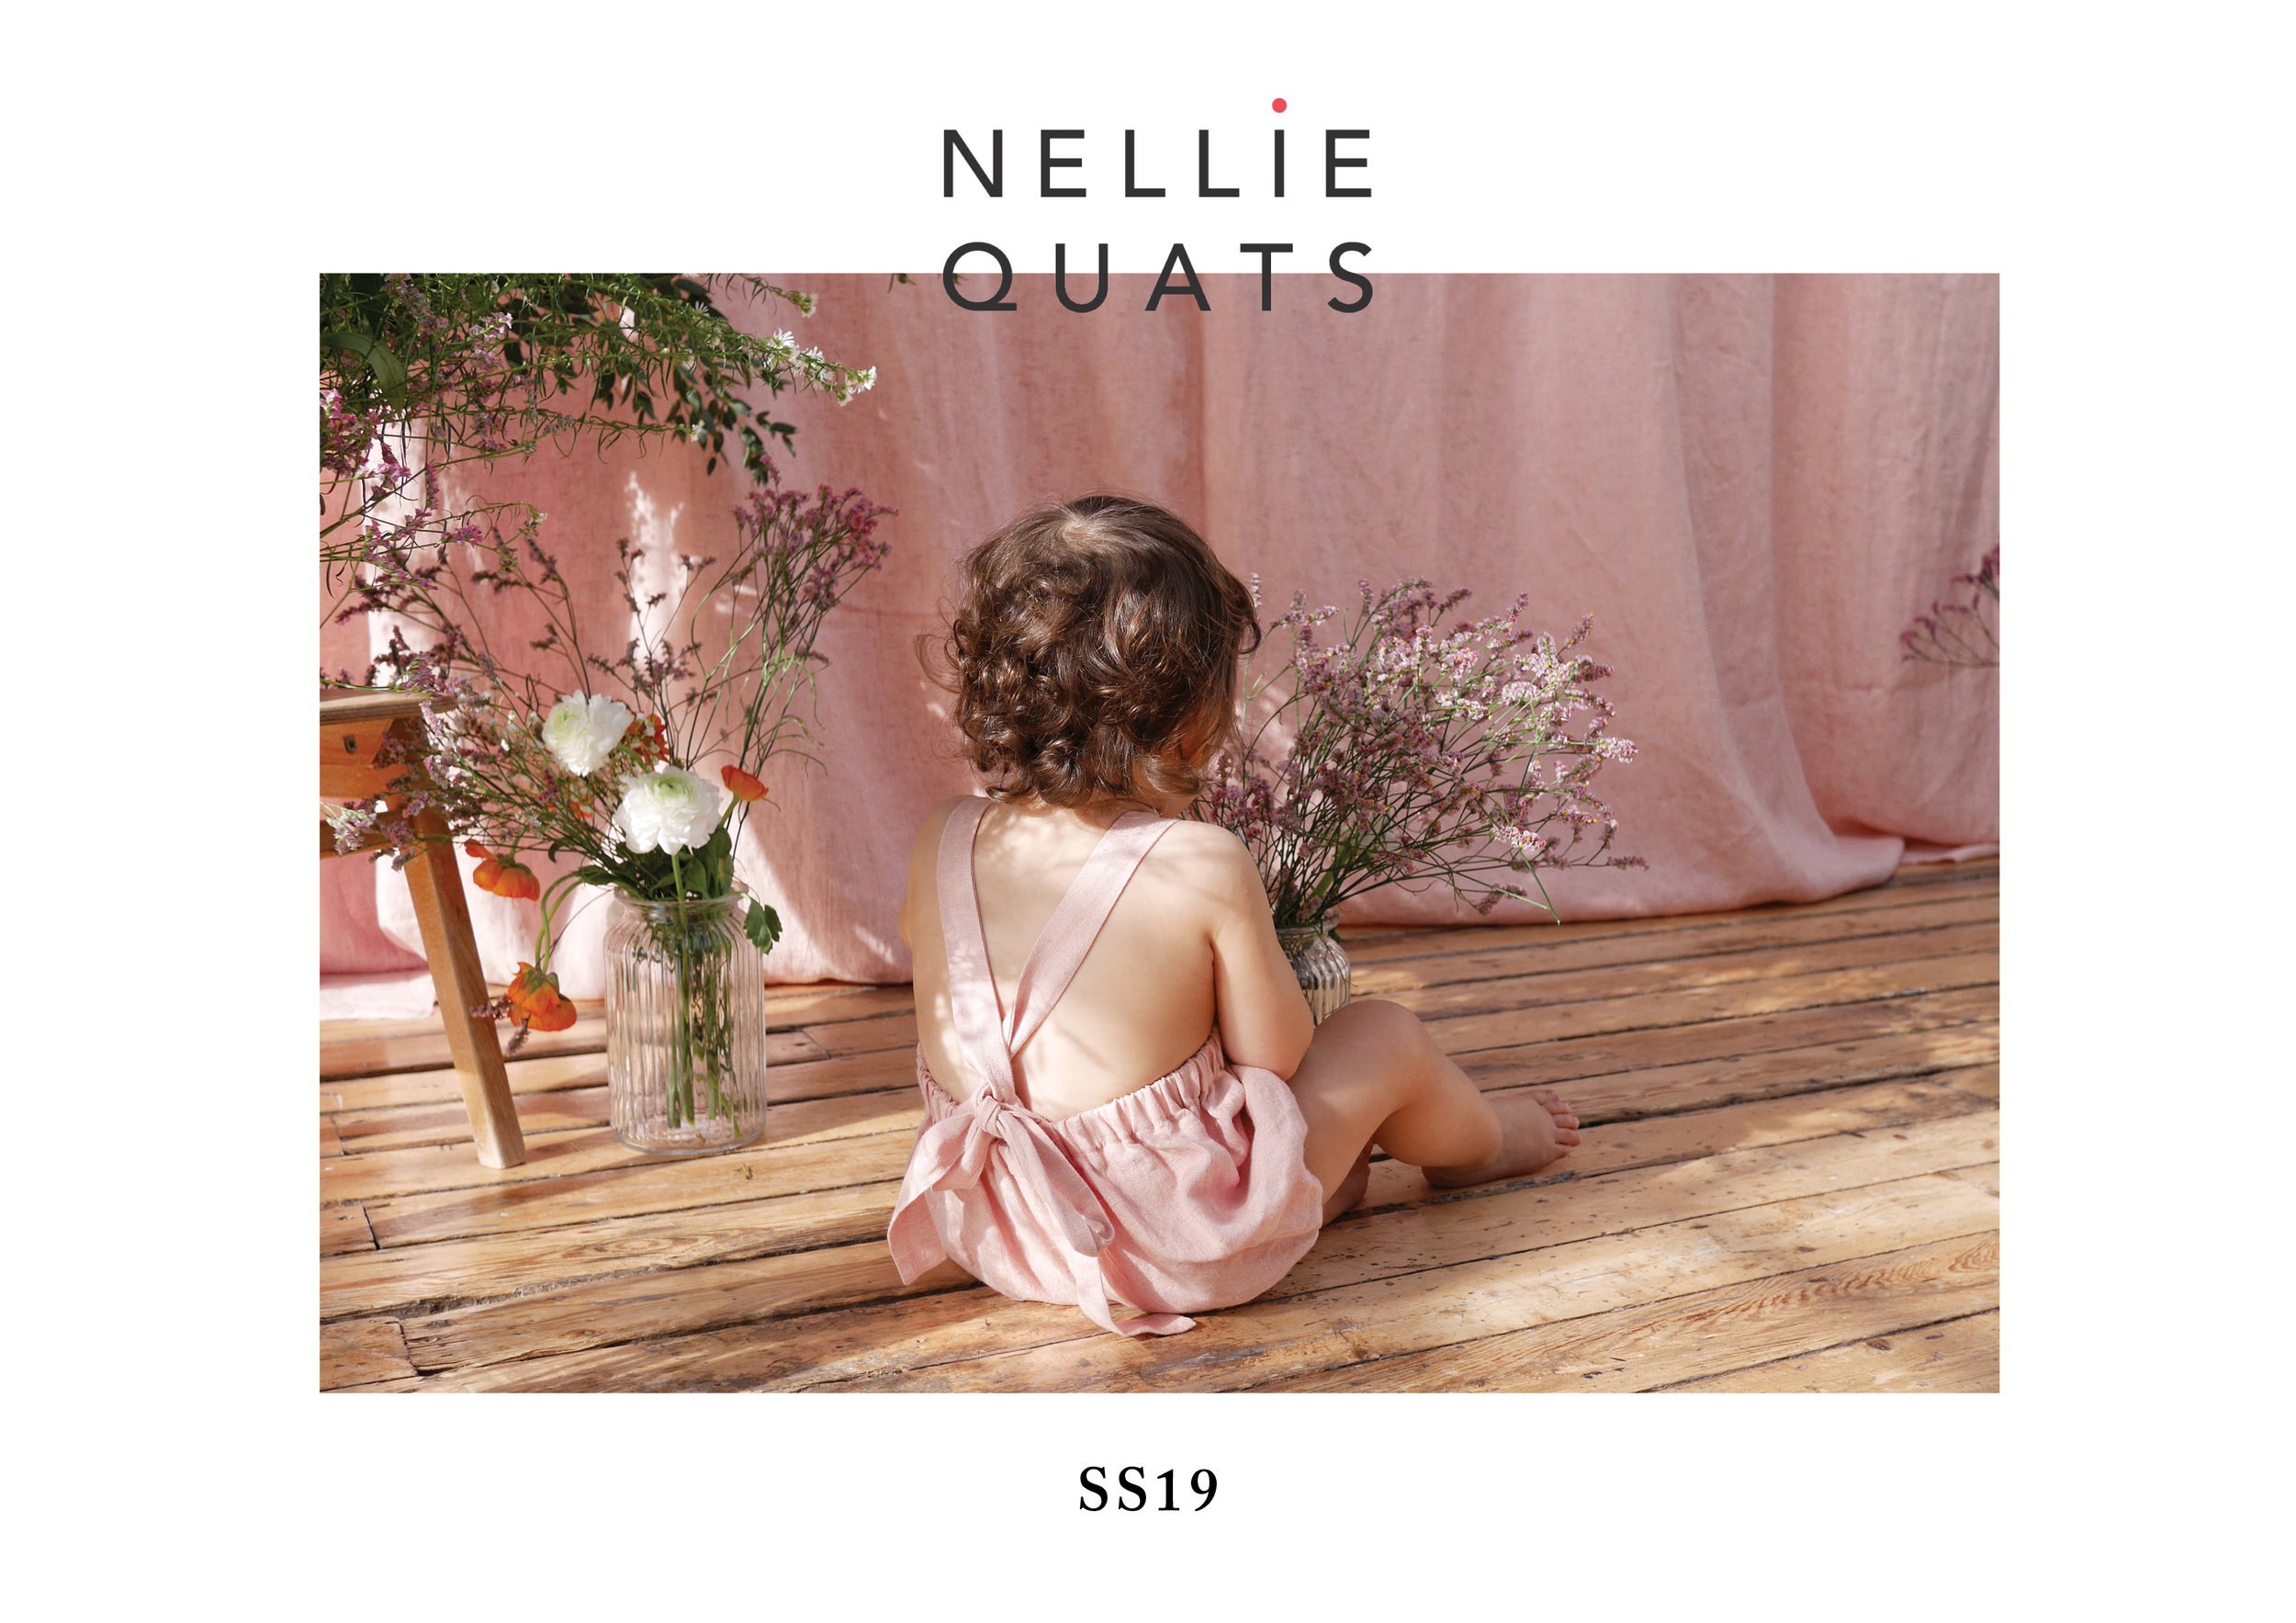 Nellie Quats SS19 Look Book.jpg